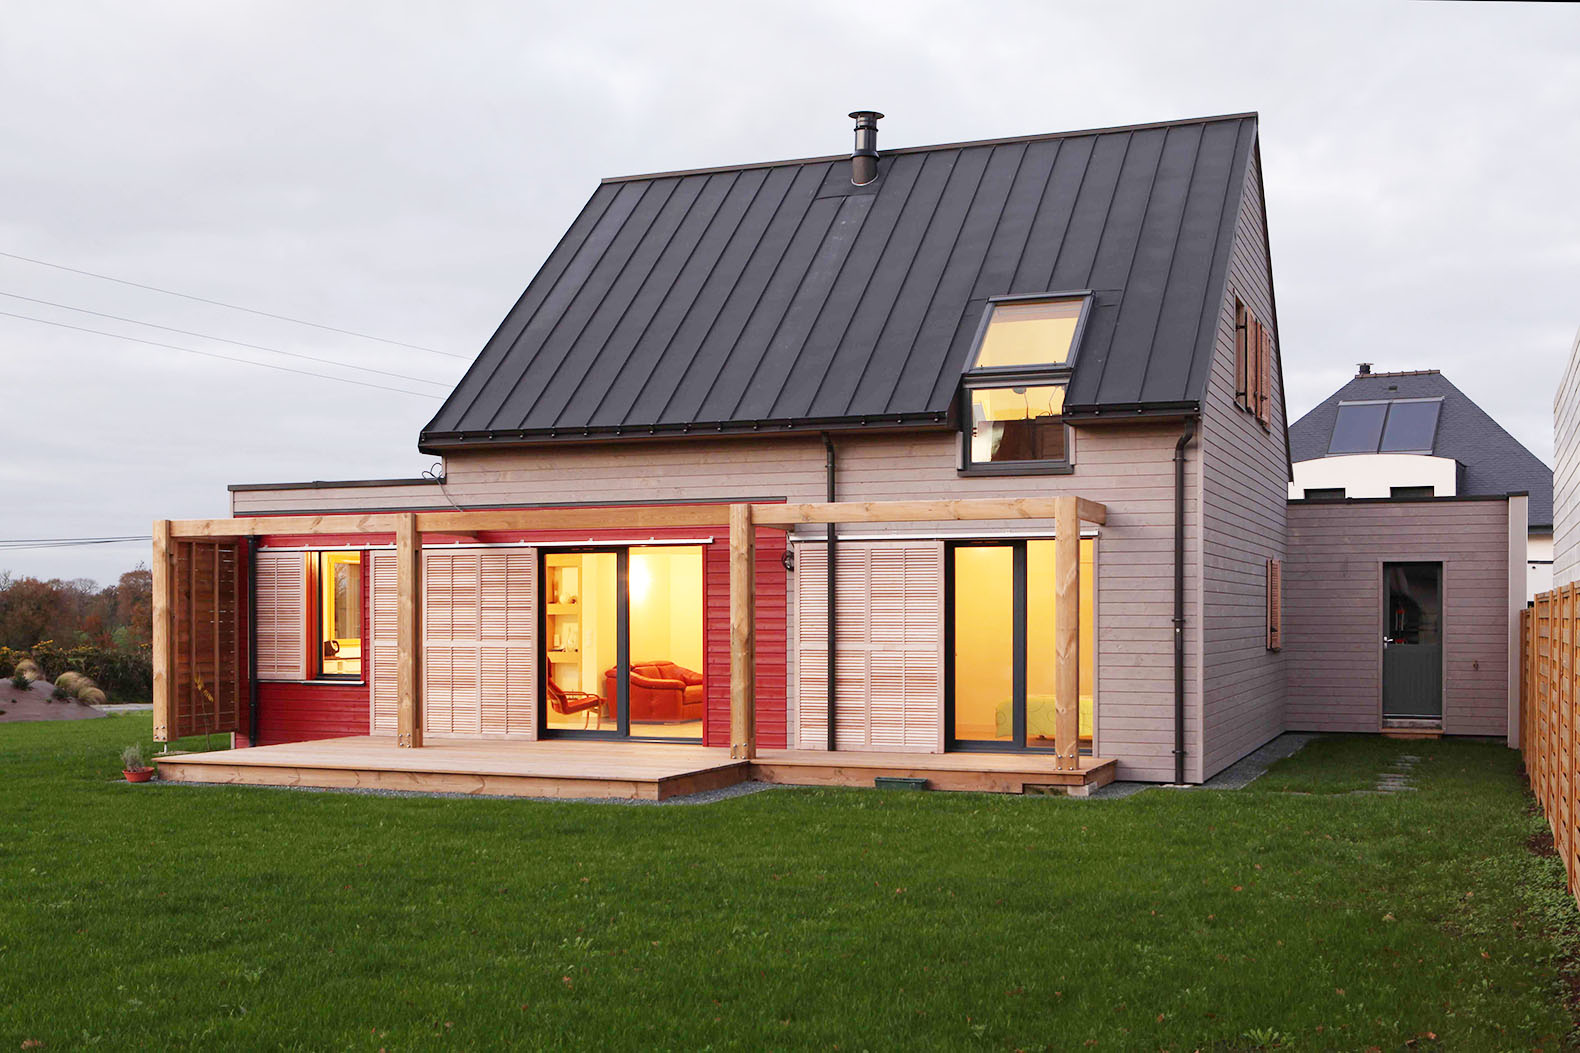 Sweet pitched roof house in France gets a green makeover with bio-sourced materials